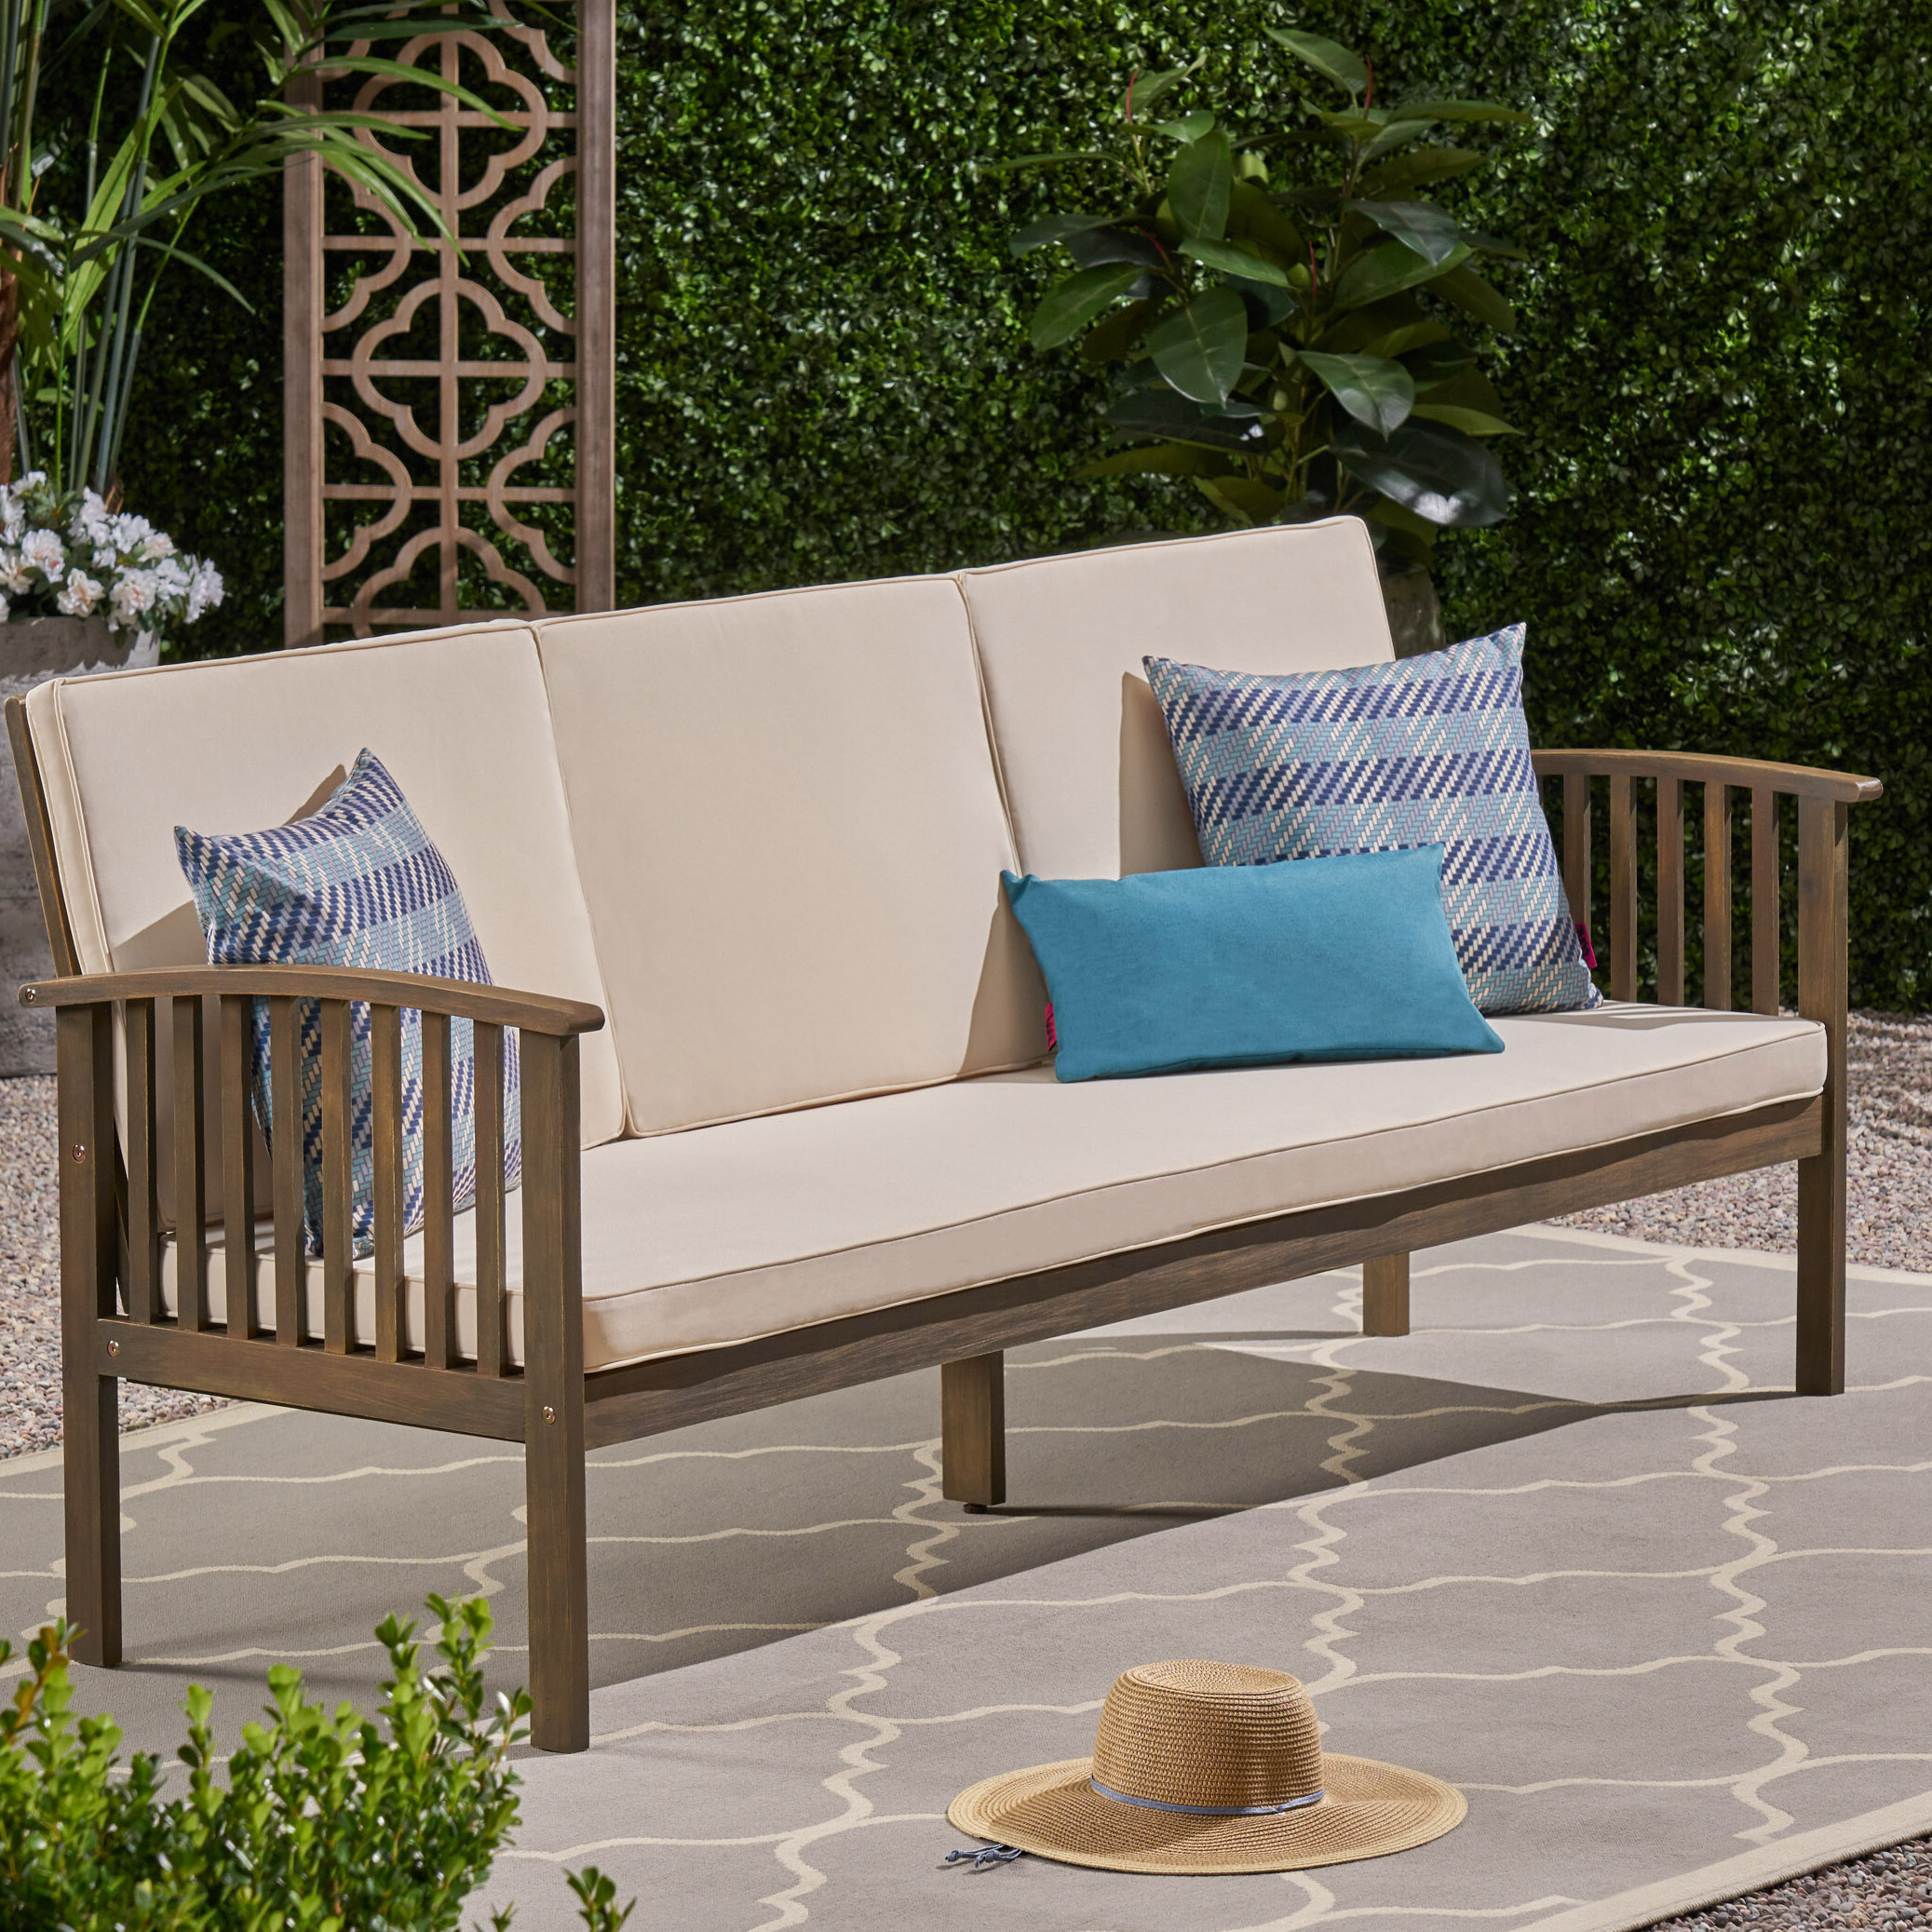 Denice Patio Sofa With Cushions With Regard To 2019 Silloth Patio Sofas With Cushions (View 7 of 20)